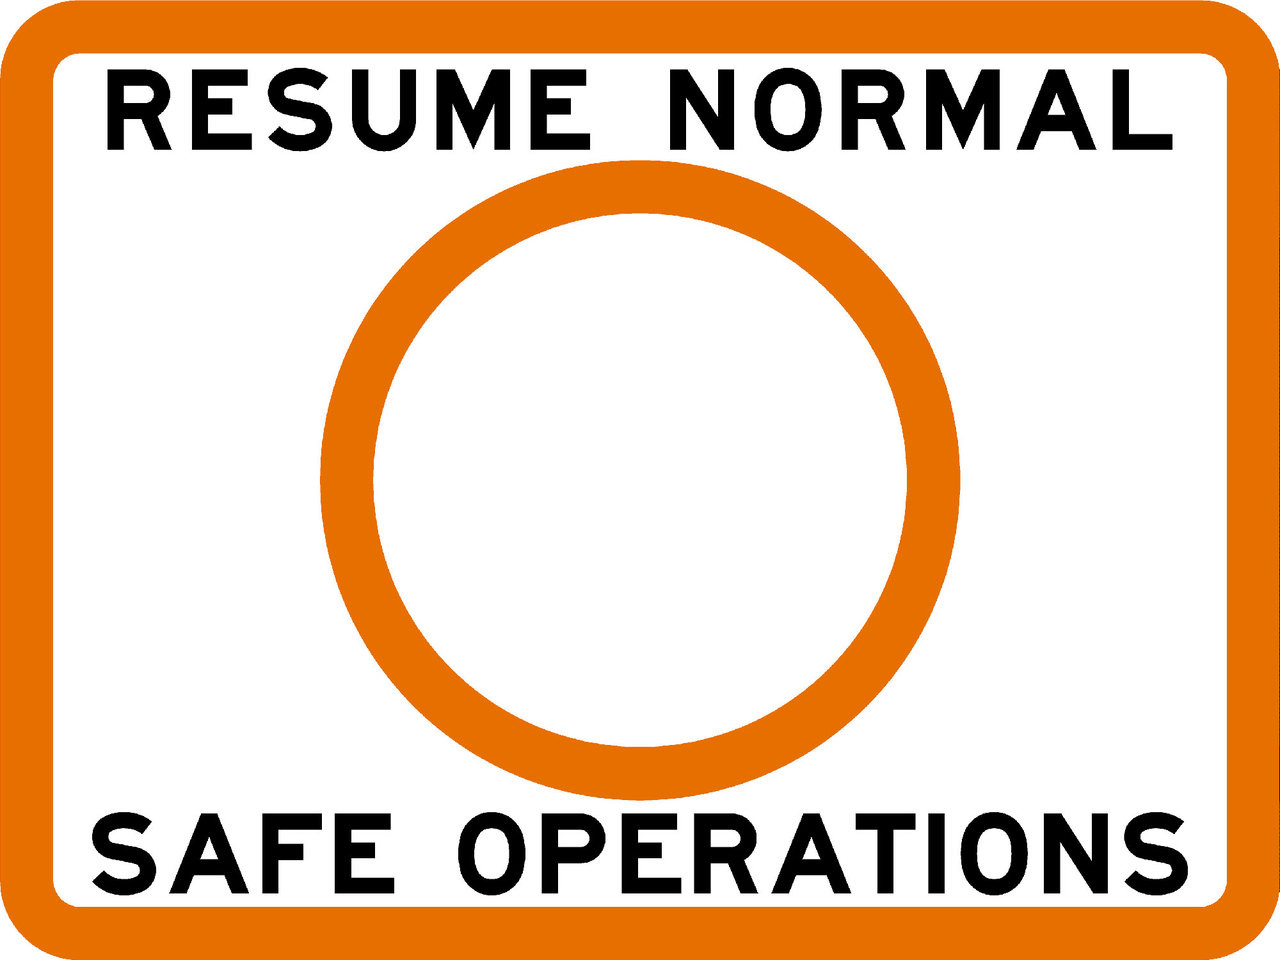 coast guard resume normal safe operations sign